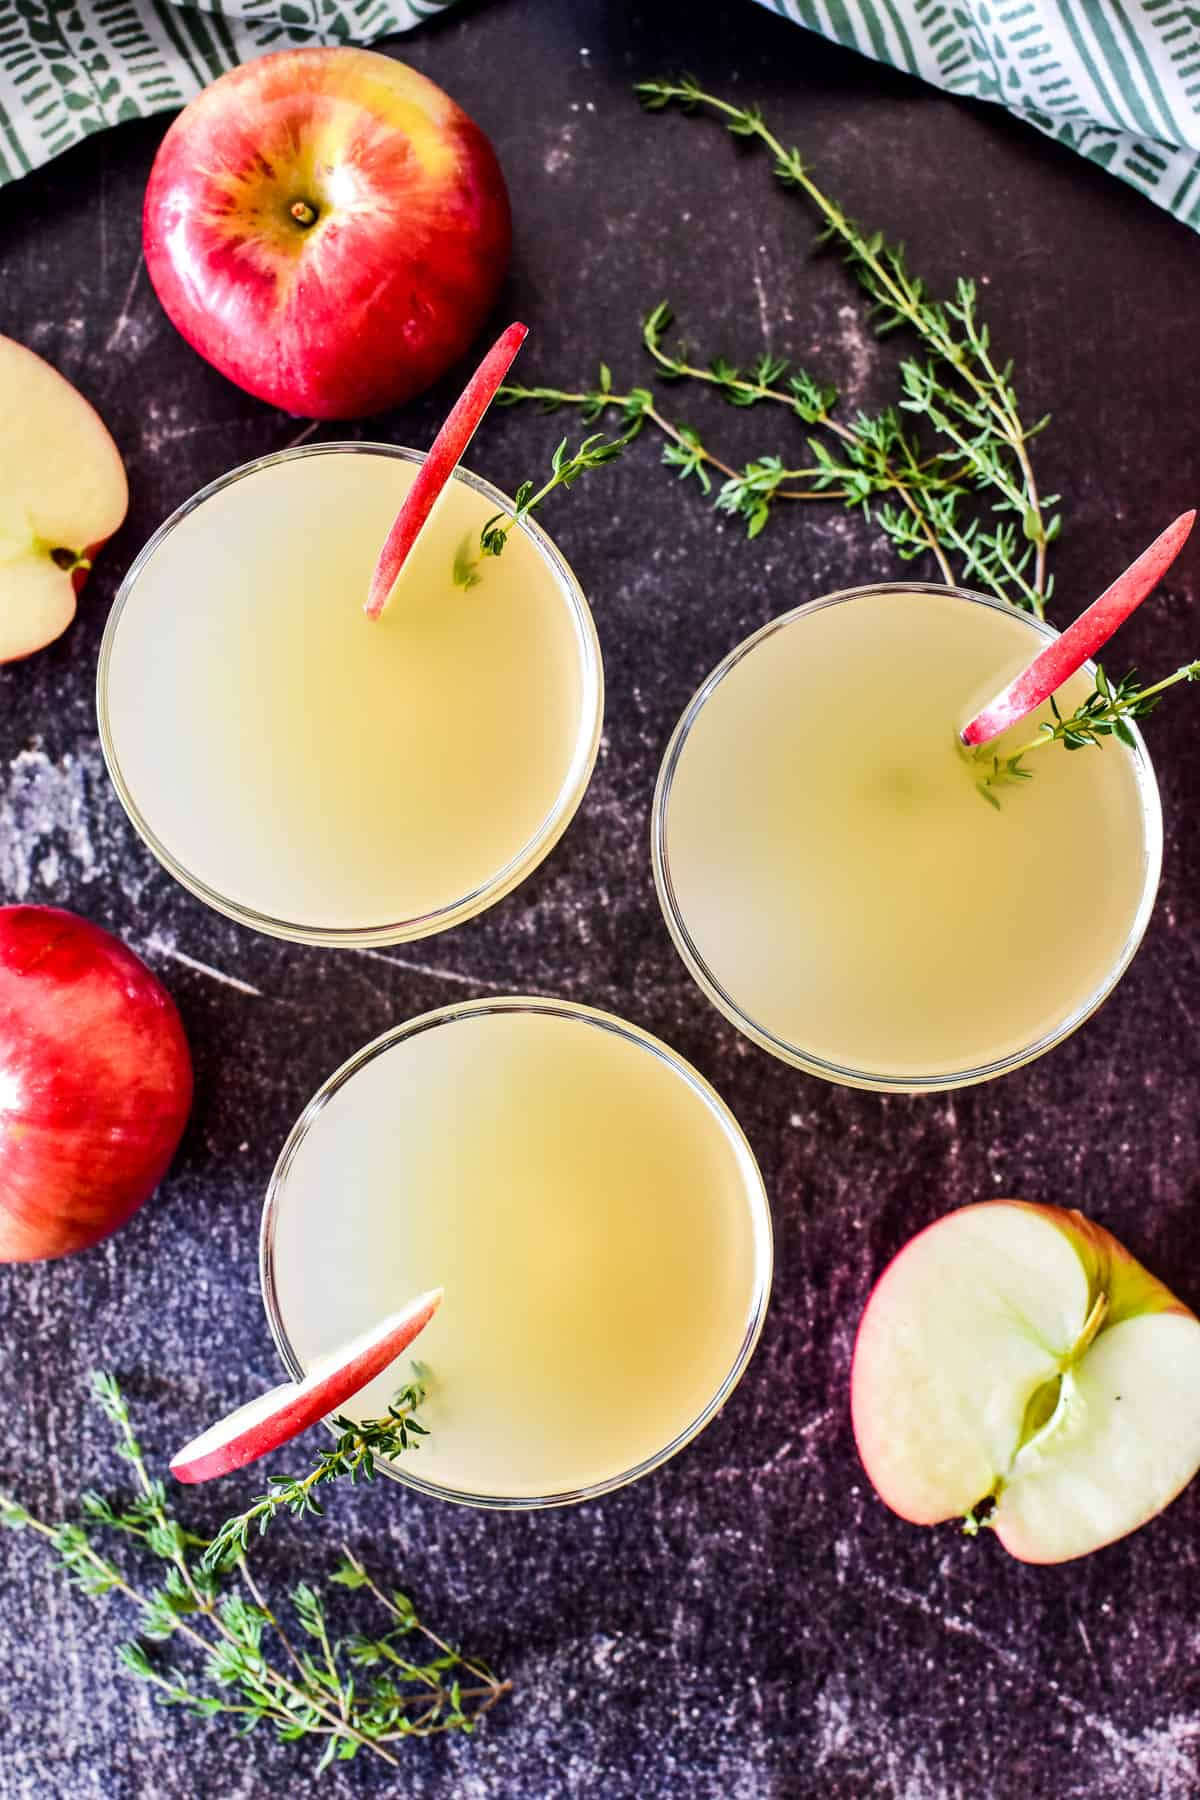 Overhead shot of 3 appletinis with fresh apples and thyme in the background